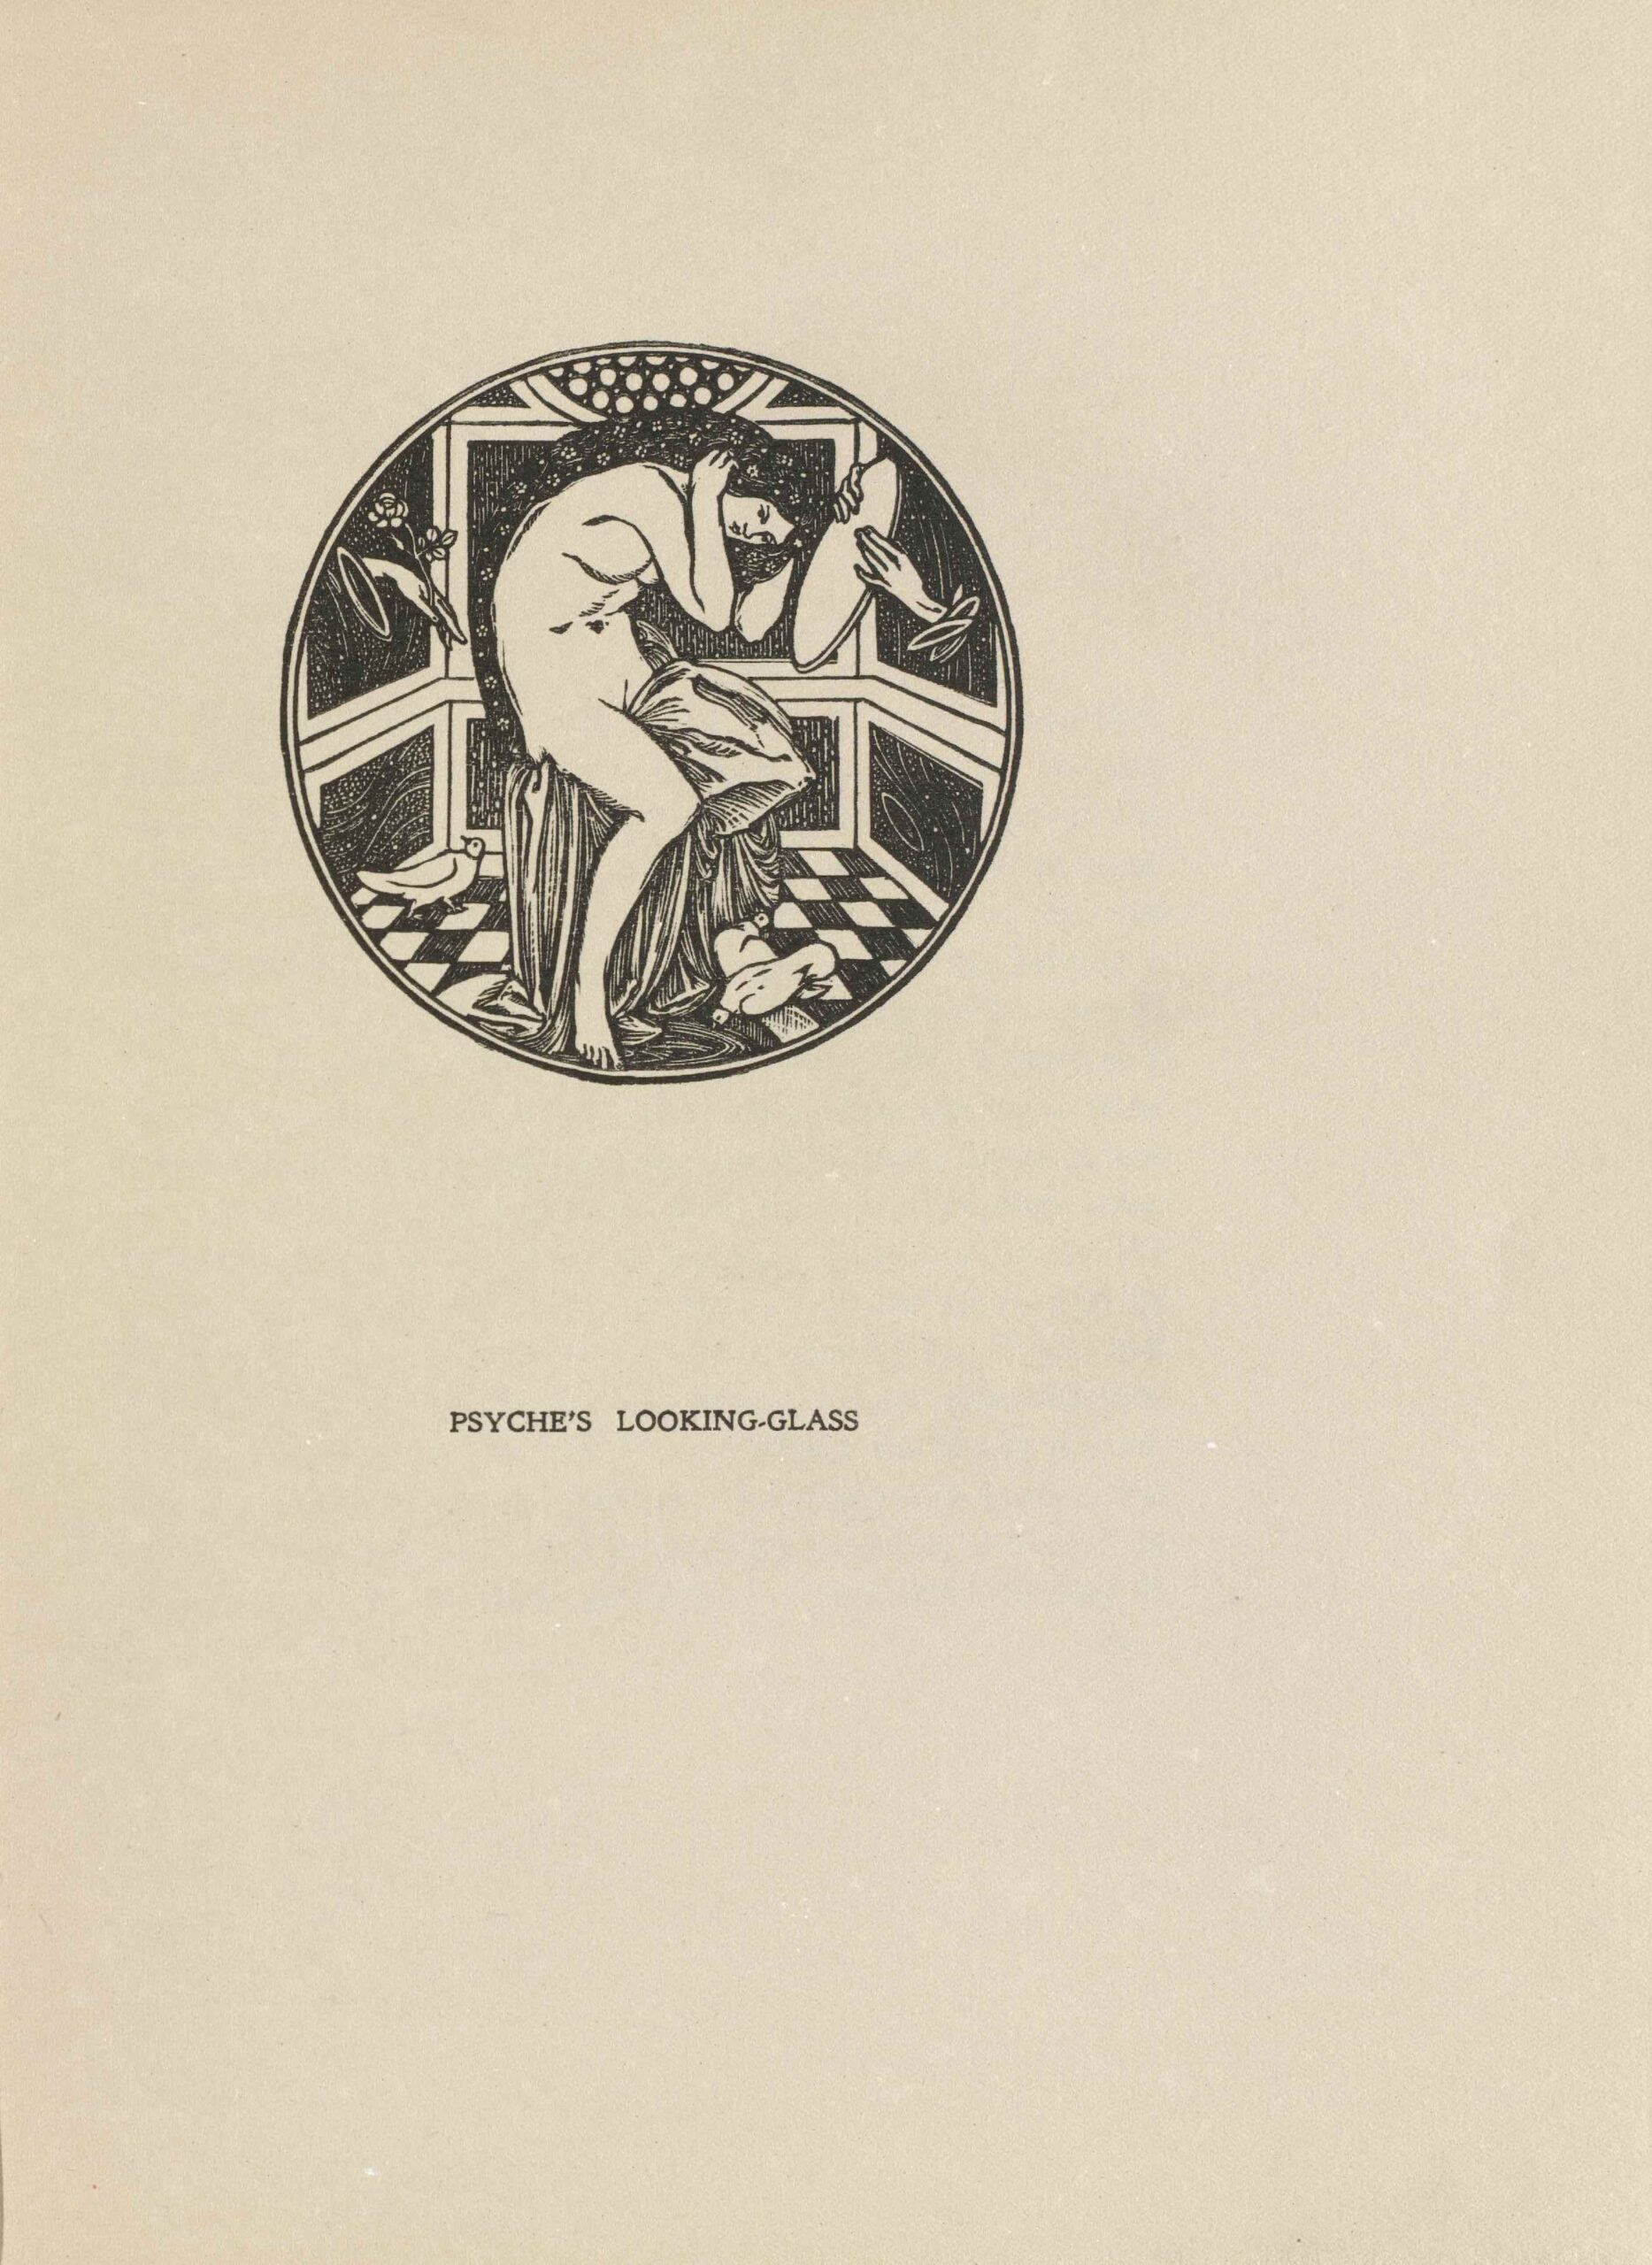 The image is within a small, circular, border and is centered in the upper region of the page. The image is printed in black ink. In the foreground, a naked woman (Psyche) is in a small room with dark, rectangular-paneled walls and checkered black-and-white flooring. She has long dark hair which is decorated with small white flowers. The woman is facing to the right, sitting on a stool draped in cloth, and is looking down into a circular looking glass held by a hand emerging from the wall in front of her on the right side of the room. The hand emerging from the left holds a single flower with a long stem. Three small birds are present on the checkered floor. Two birds are at the woman's feet. One of them appears to be drinking from a small pond embedded in the middle of the floor. The third bird is in the background left of the image and is looking upwards towards the hand holding a flower.